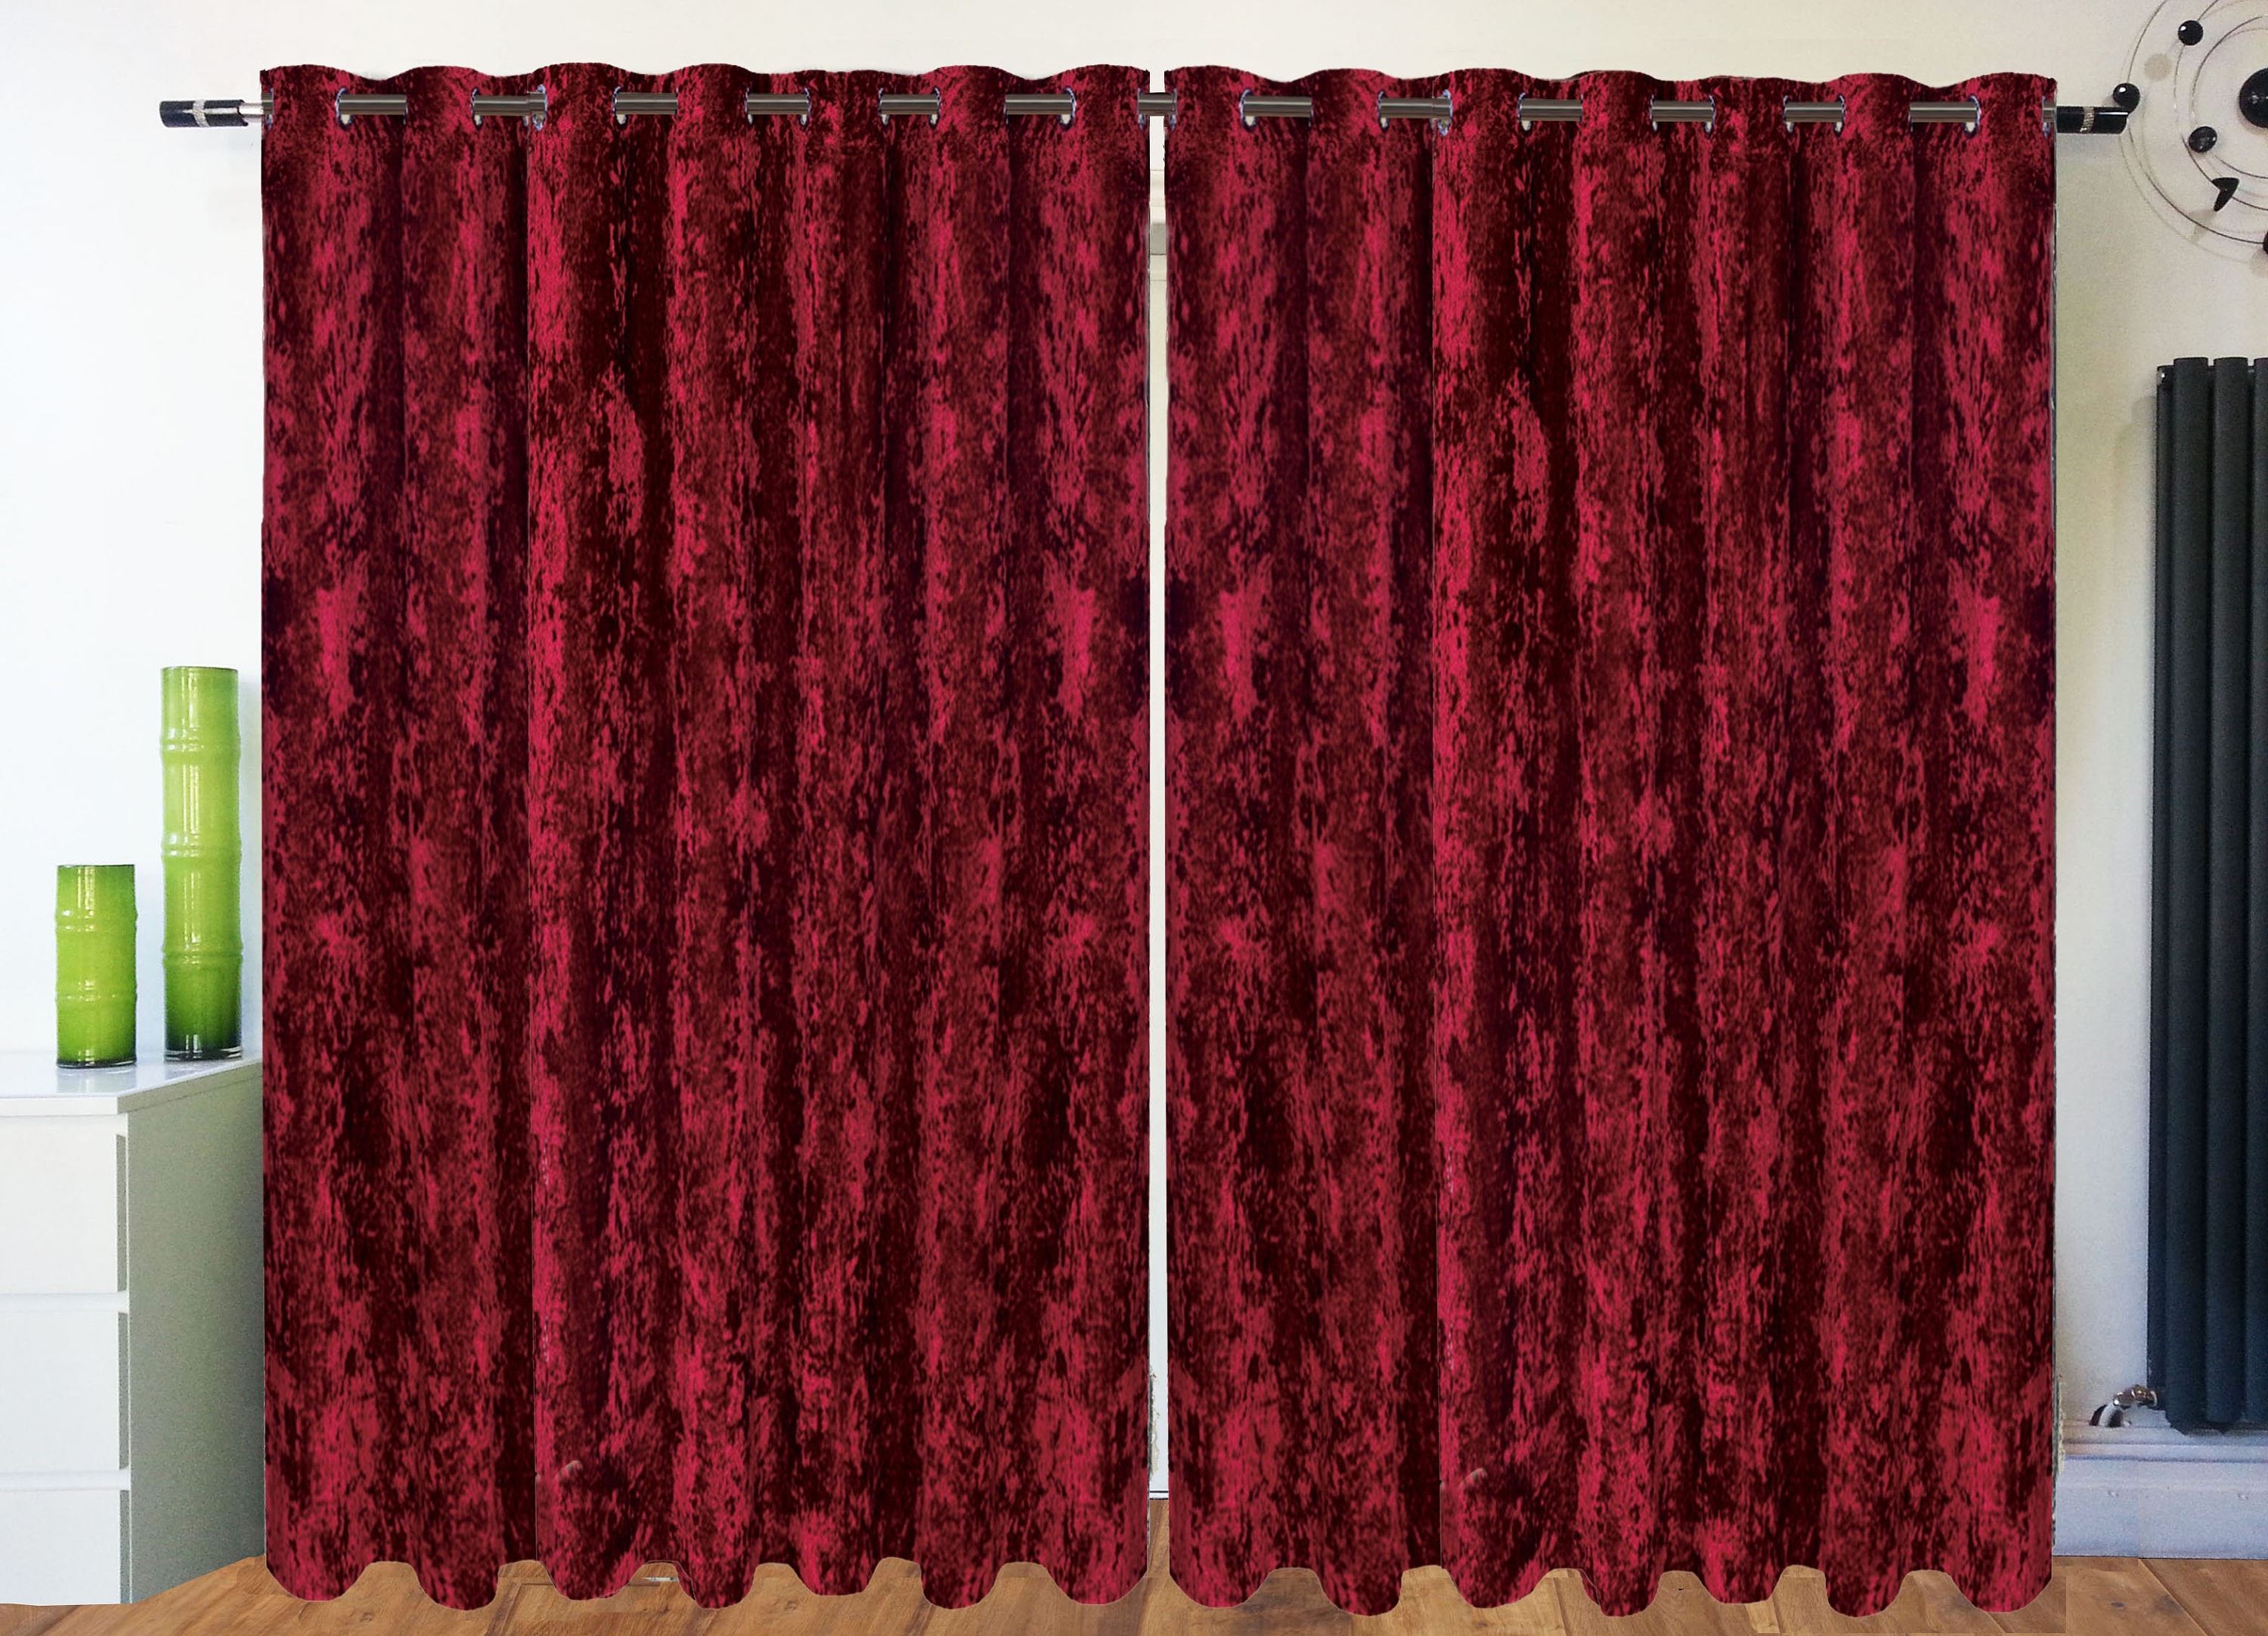 Red Velvet Curtains Etsy Regarding Velveteen Curtains (Image 11 of 15)